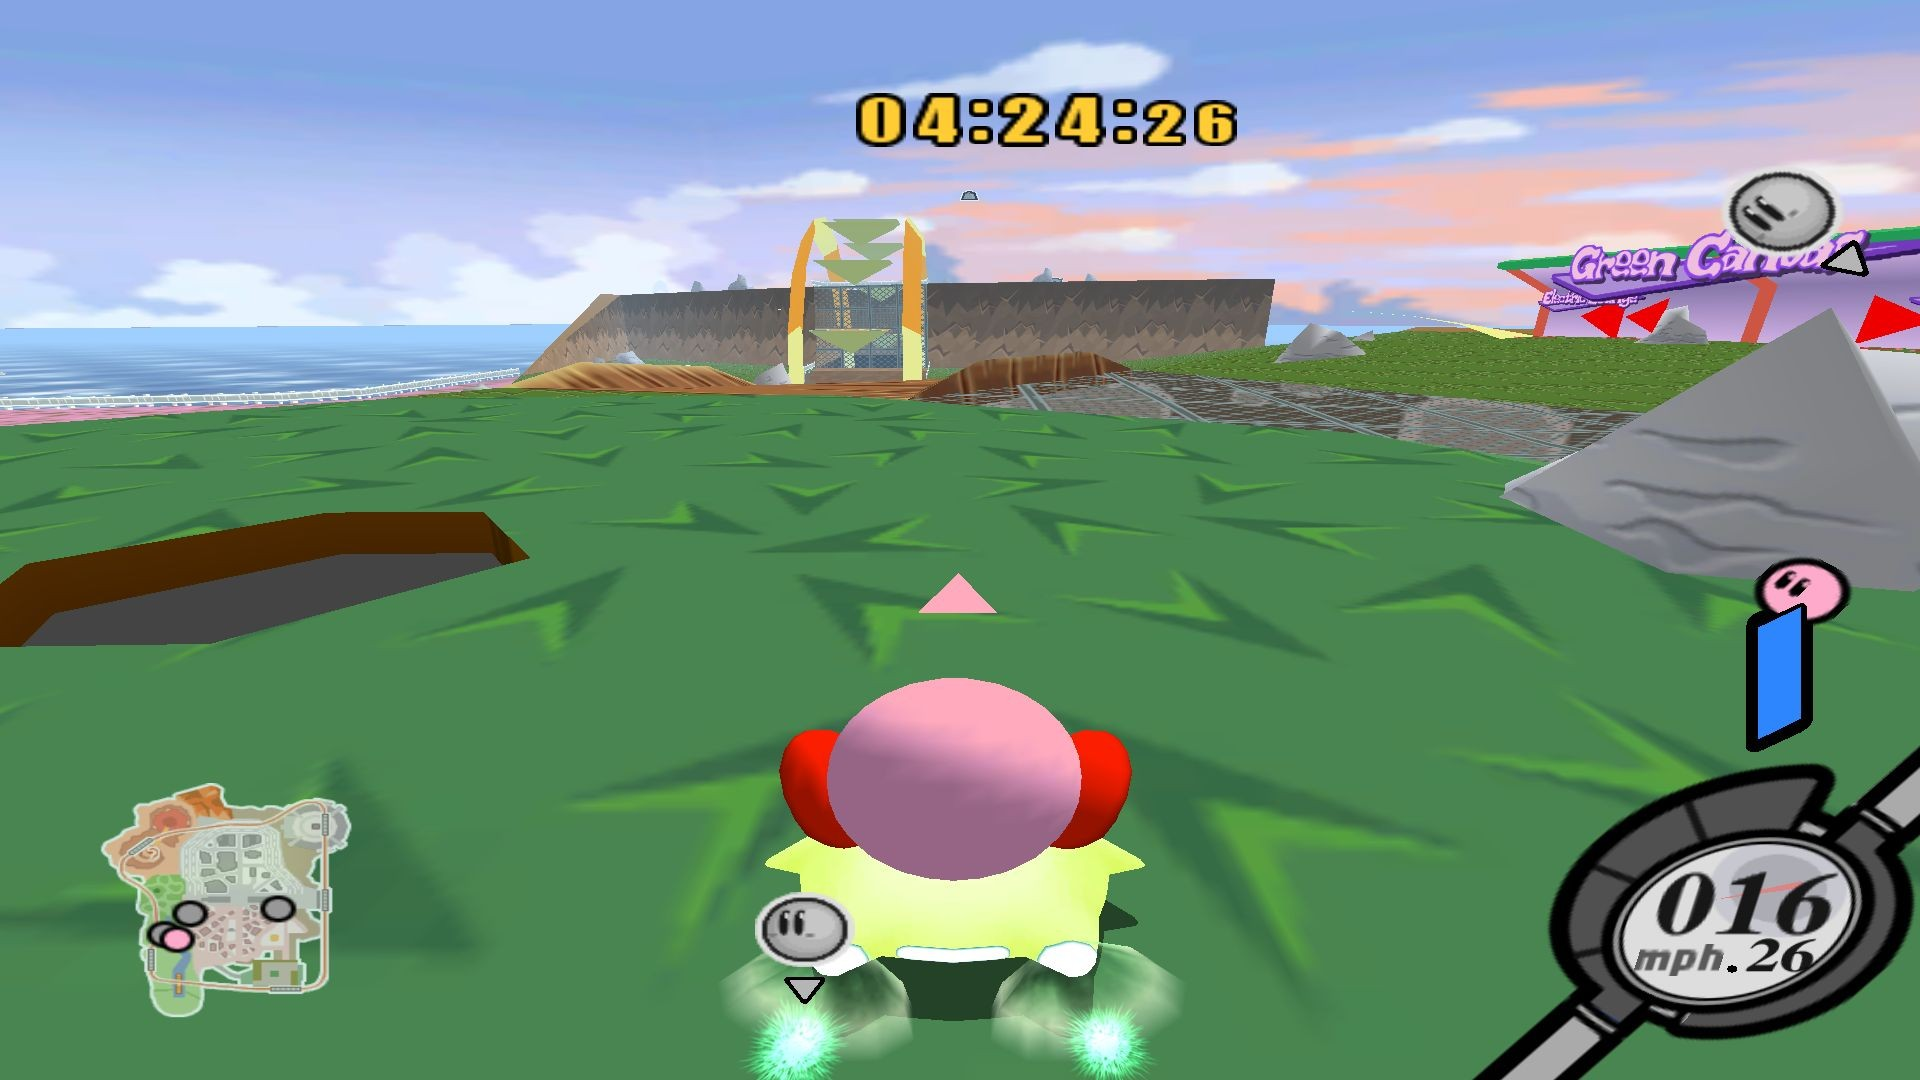 Free 3d Dolphin Wallpaper Kirby Air Ride City Trial Map Gamebanana Projects